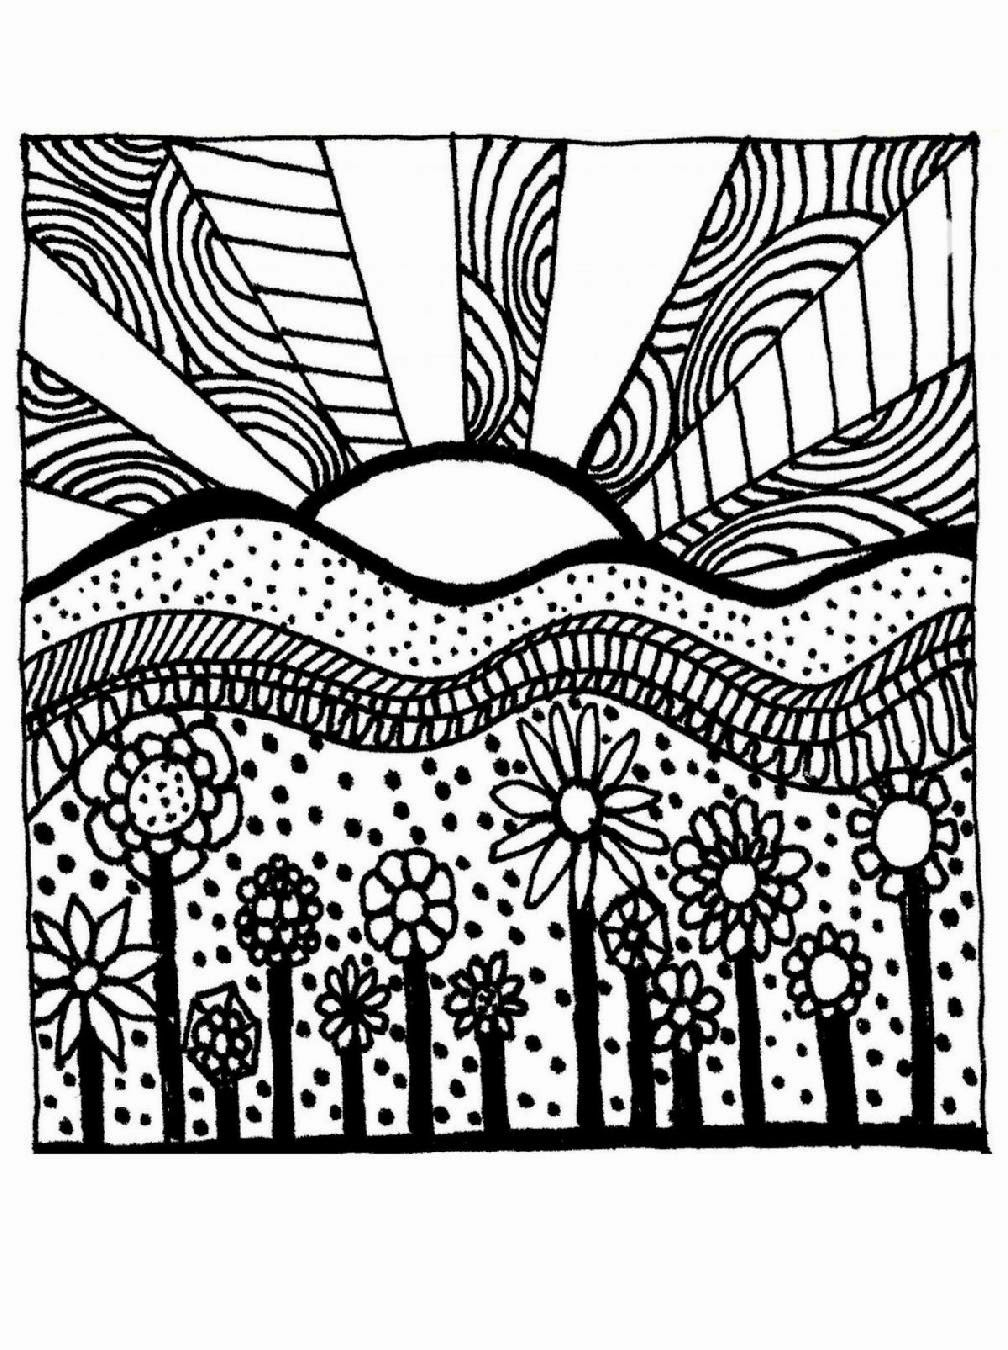 Adult coloring sheets free coloring sheet for Free printable coloring pages for adults and kids